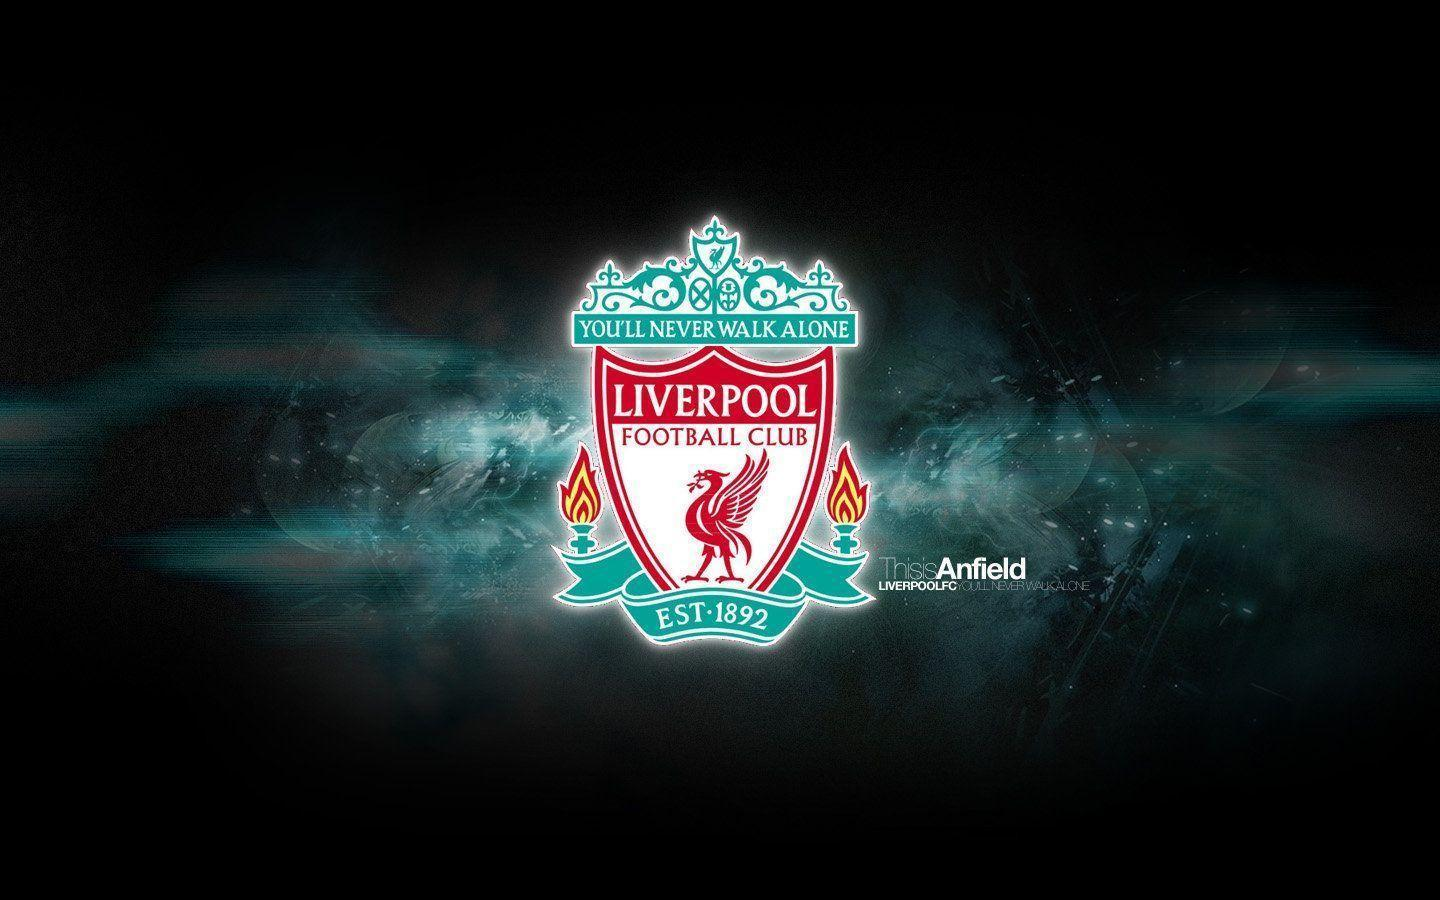 Free Wallpaper Liverpool Fc 1440x900PX ~ Wallpaper Liverpool Fc Hd ...